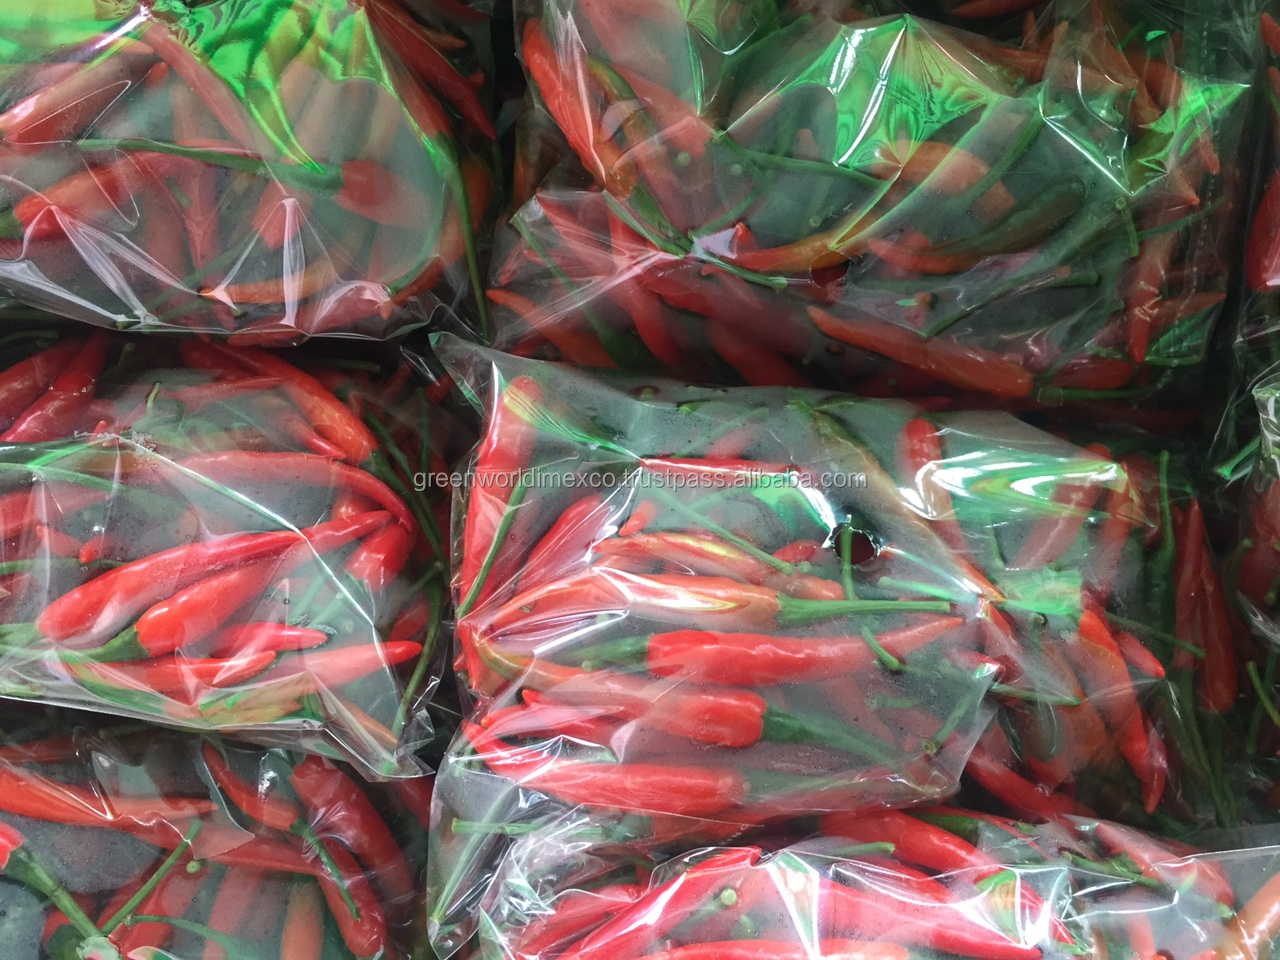 CONTINUED HOT WITH FRESH/ FROZEN/DRIED CHILI FROM VIET NAM-HIGH QUALITY- COMPETITIVE PRICE